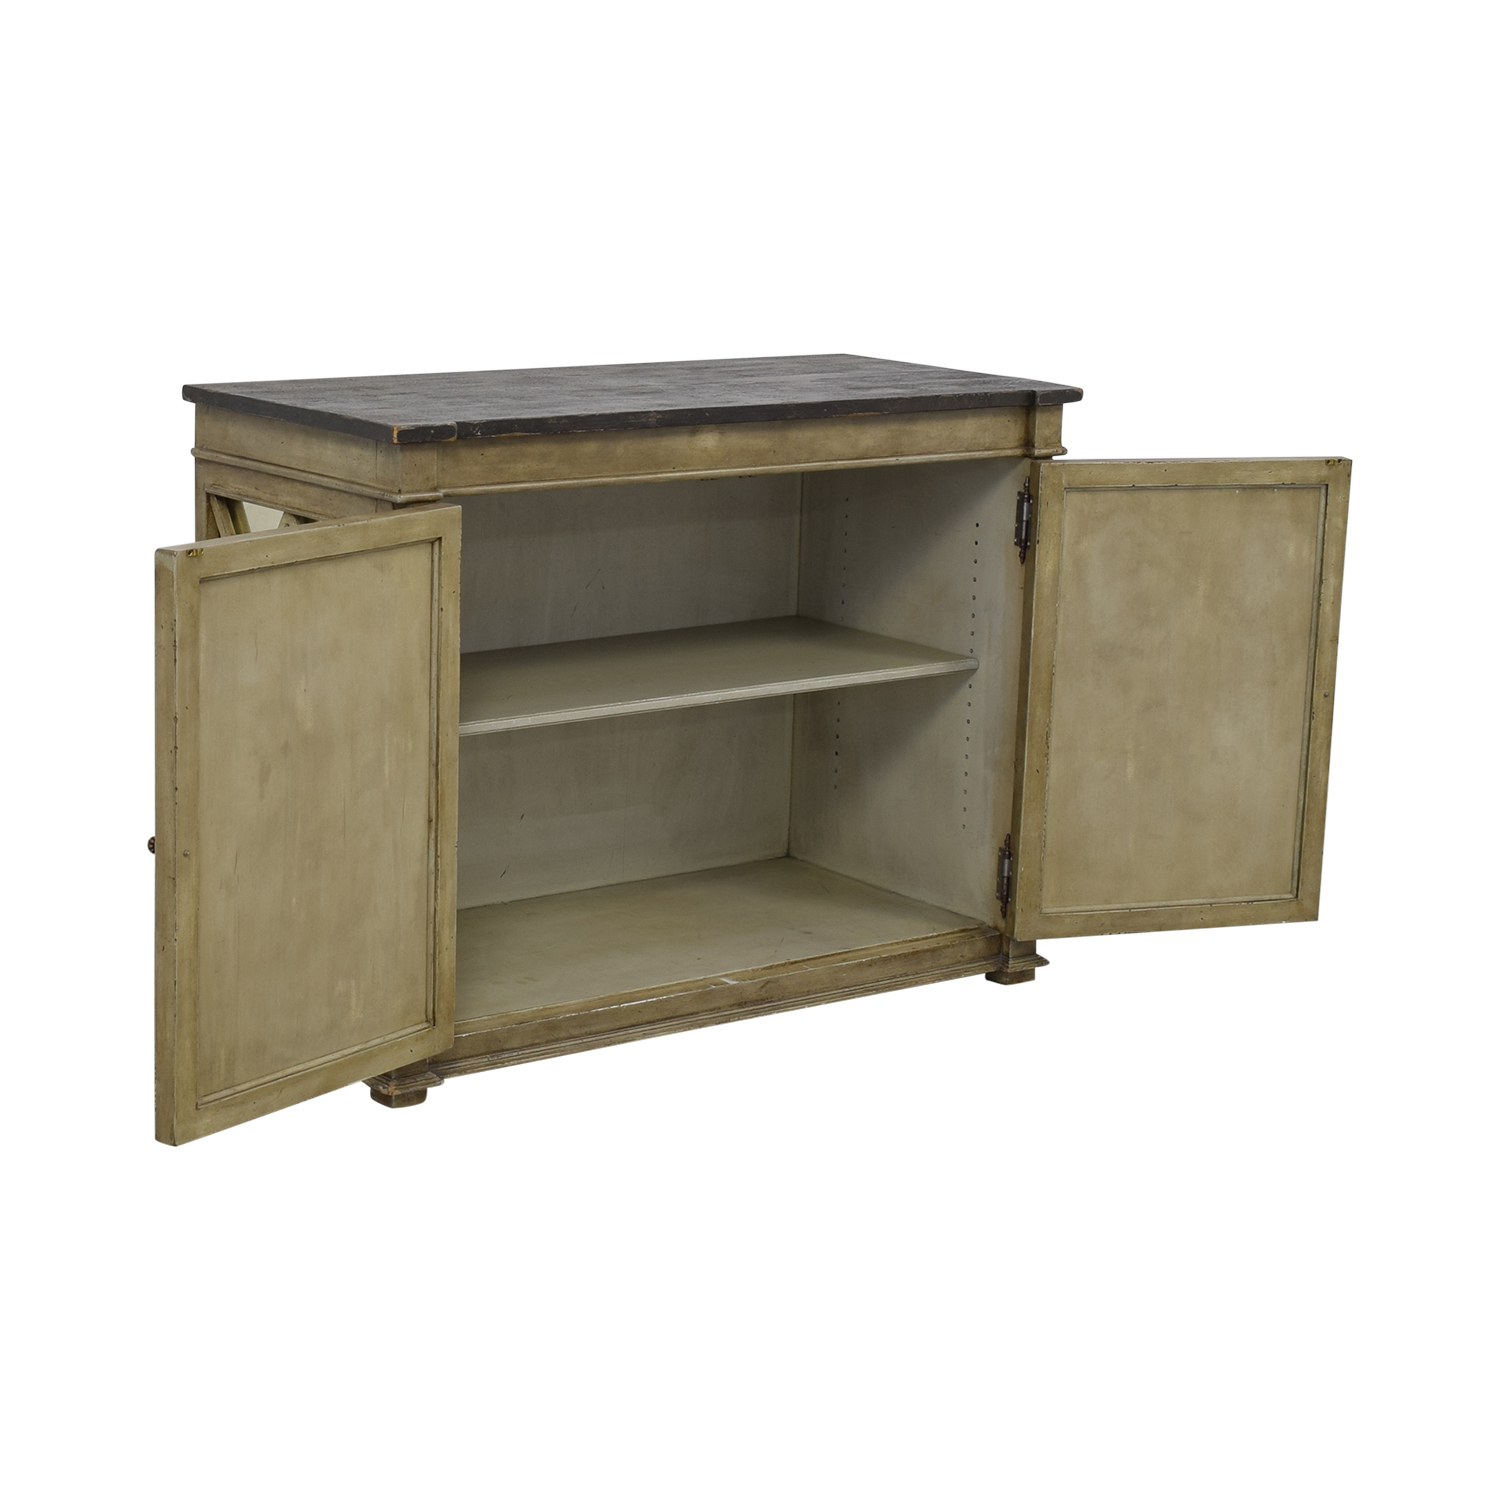 Mecox Gardens Mecox Gardens Sideboard Cabinet for sale